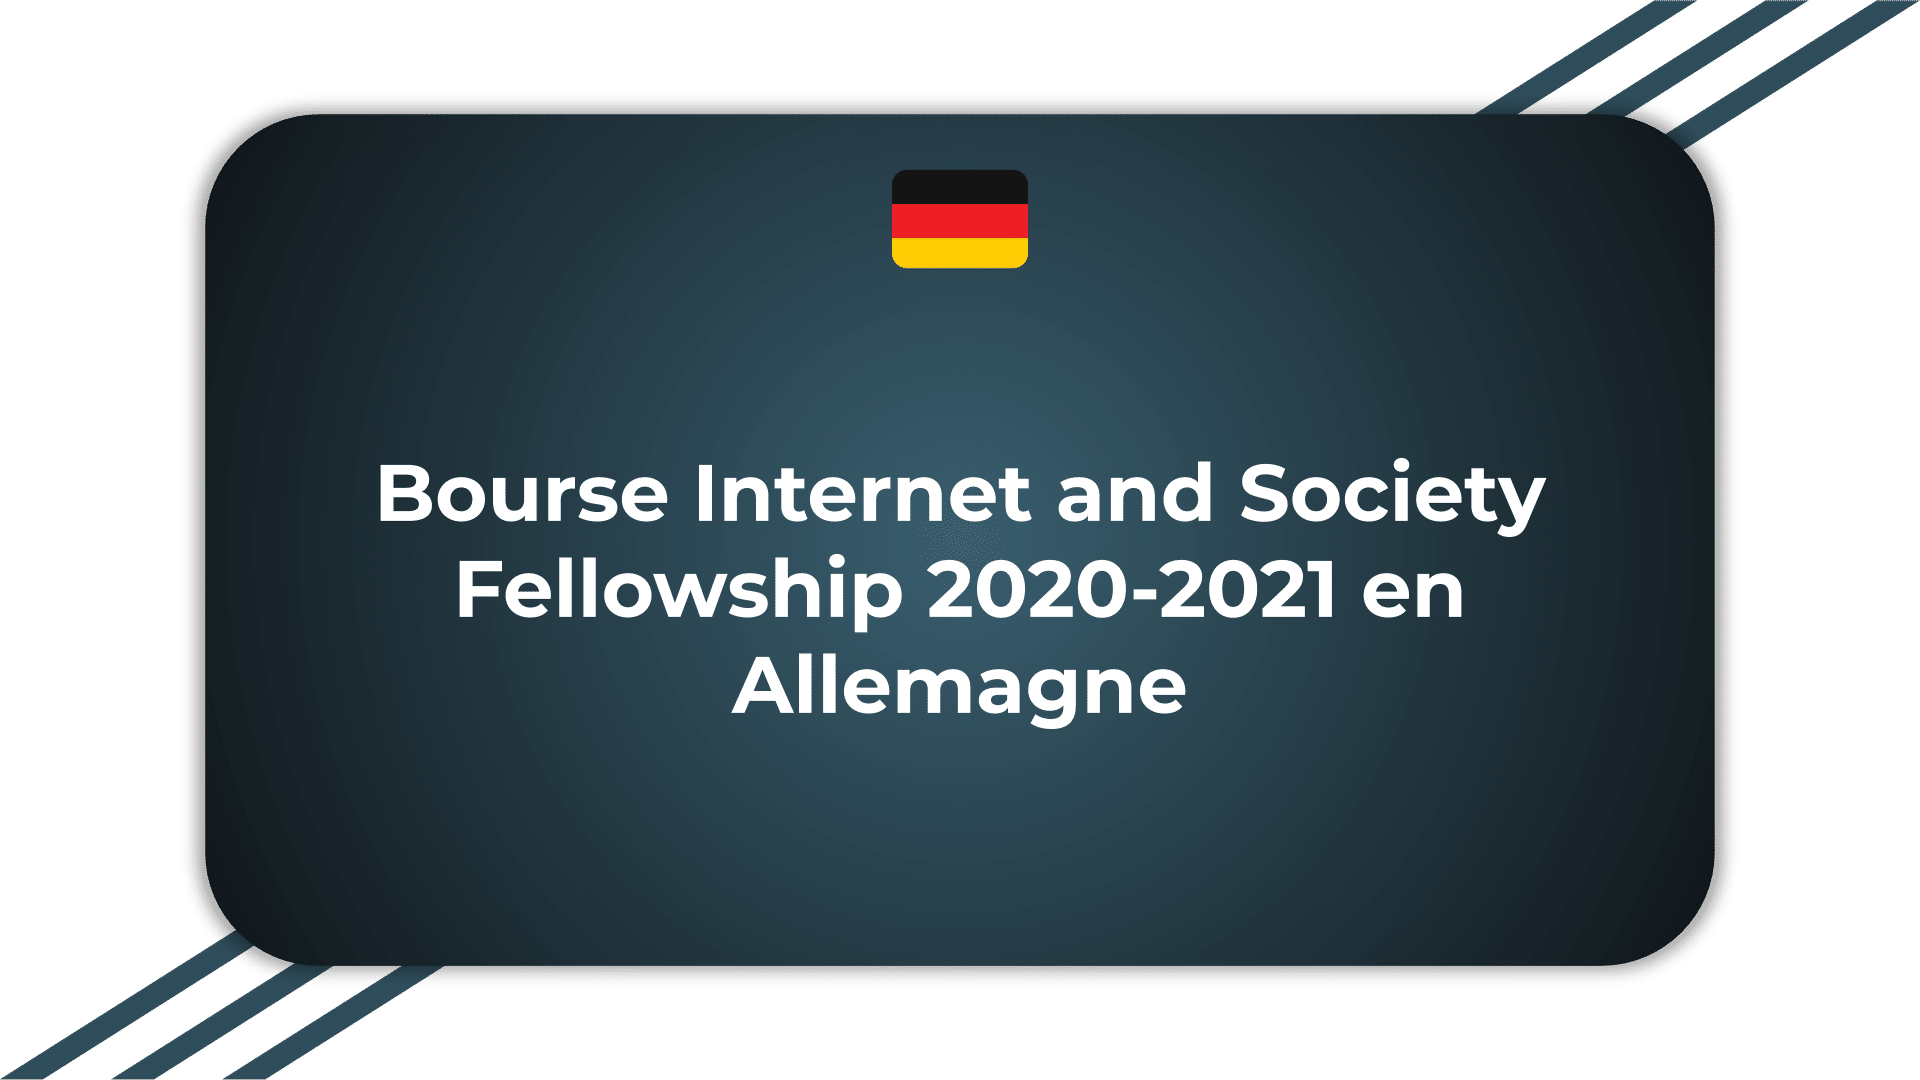 Bourse Internet and Society Fellowship